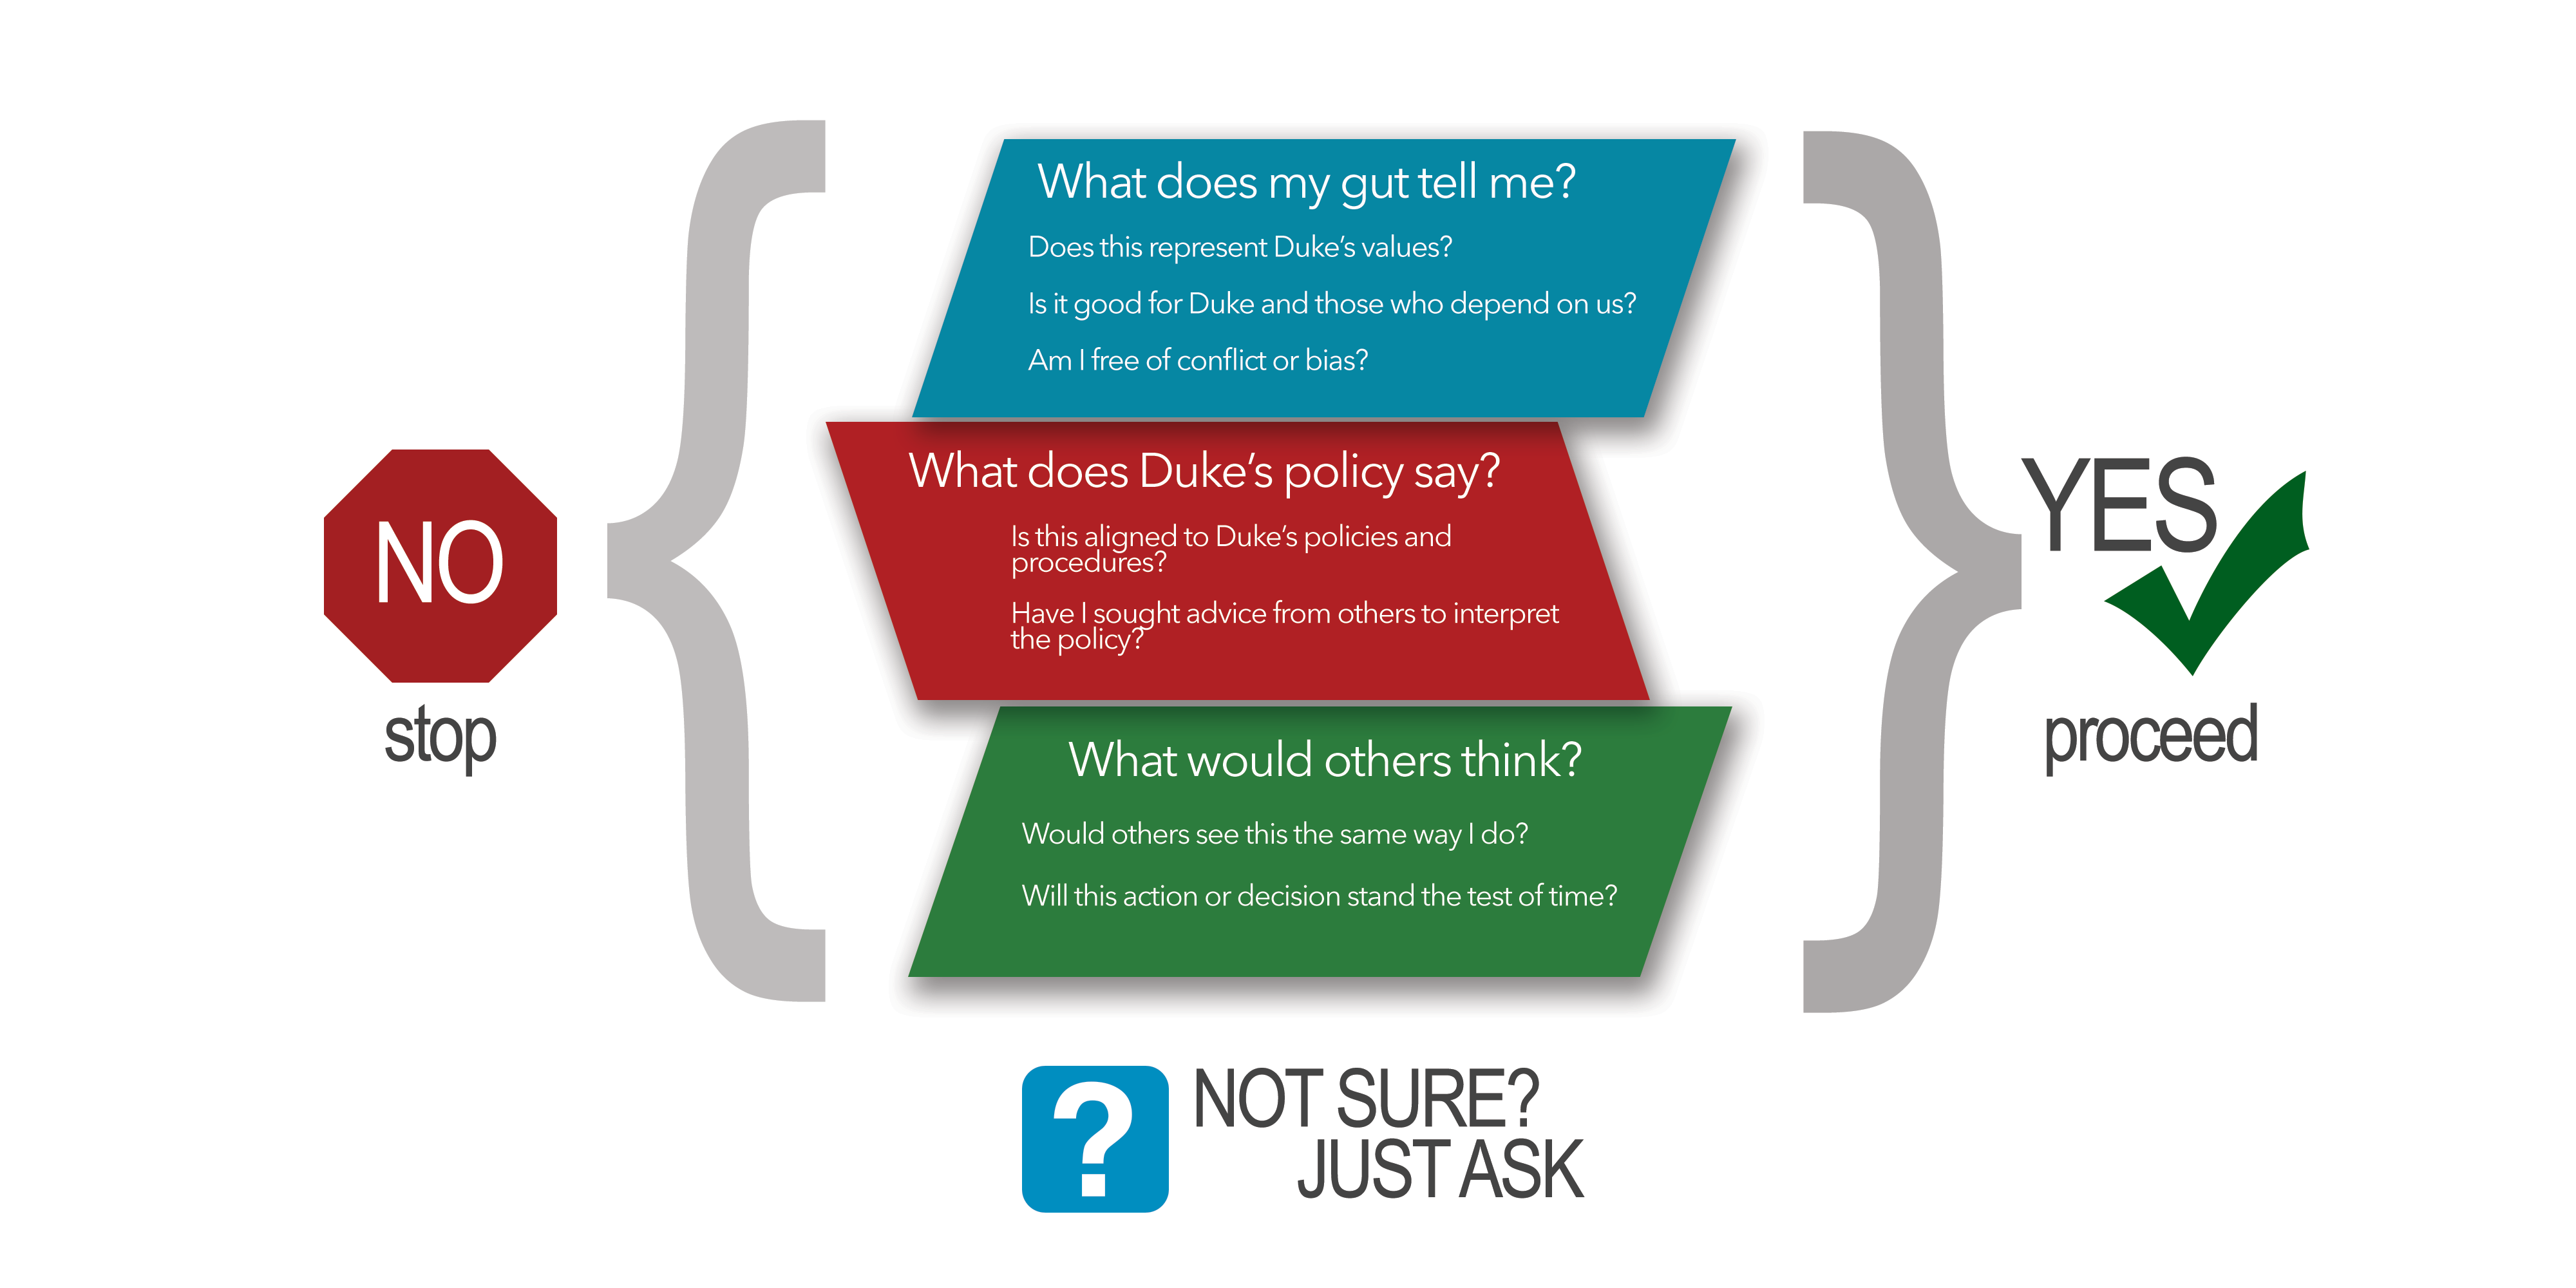 """Ask Yourself... What does my gut tell me? Does this represent Duke's values? Is it good for Duke and those who depend on us? — What does Duke's policy say? Is this aligned to Duke 's policies and procedures? — What would others think? Would others see this the same way I do? Will this action or decision stand the test of time? If you answered, """"Yes"""" to these questions, proceed. Otherwise, stop. And if you're not sure... just ask."""